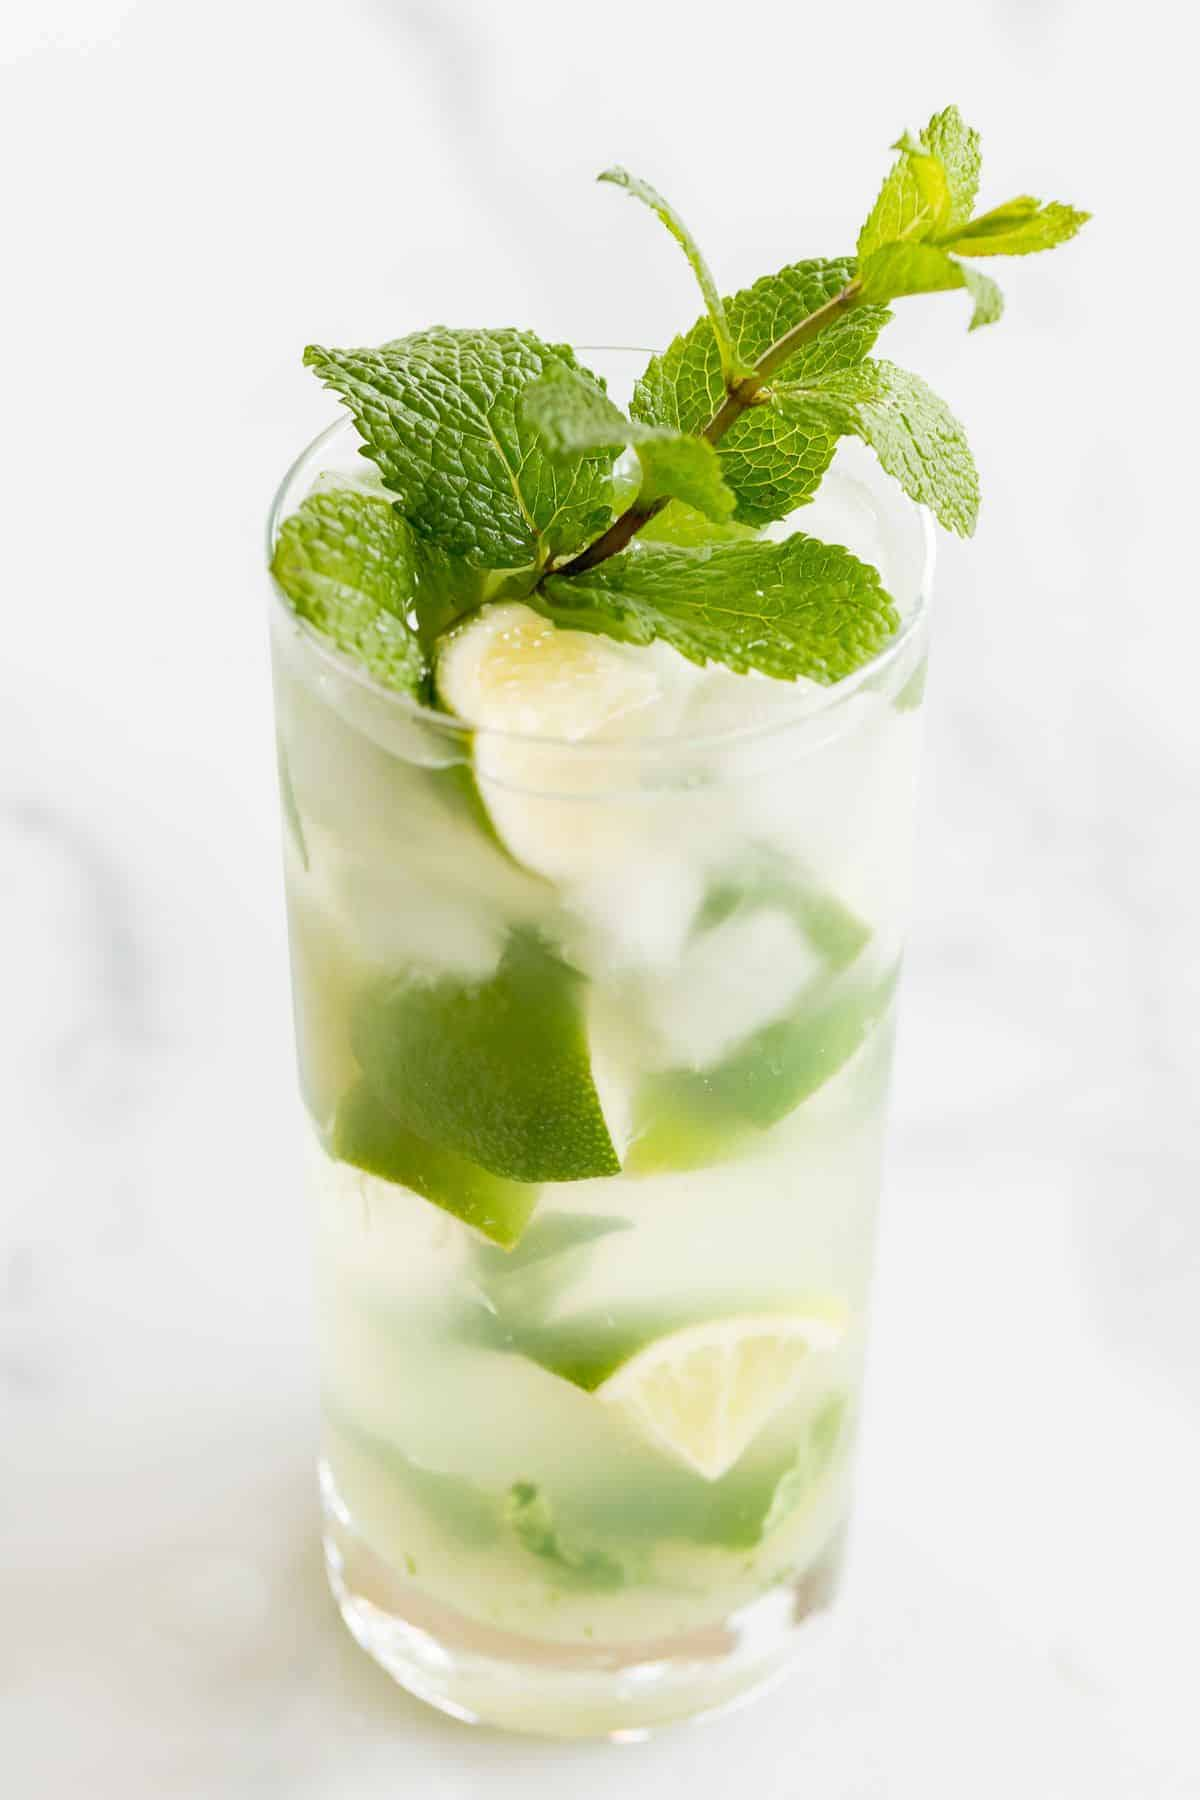 A gin mojito recipe in a clear glass, garnished with mint and lime on a marble surface.